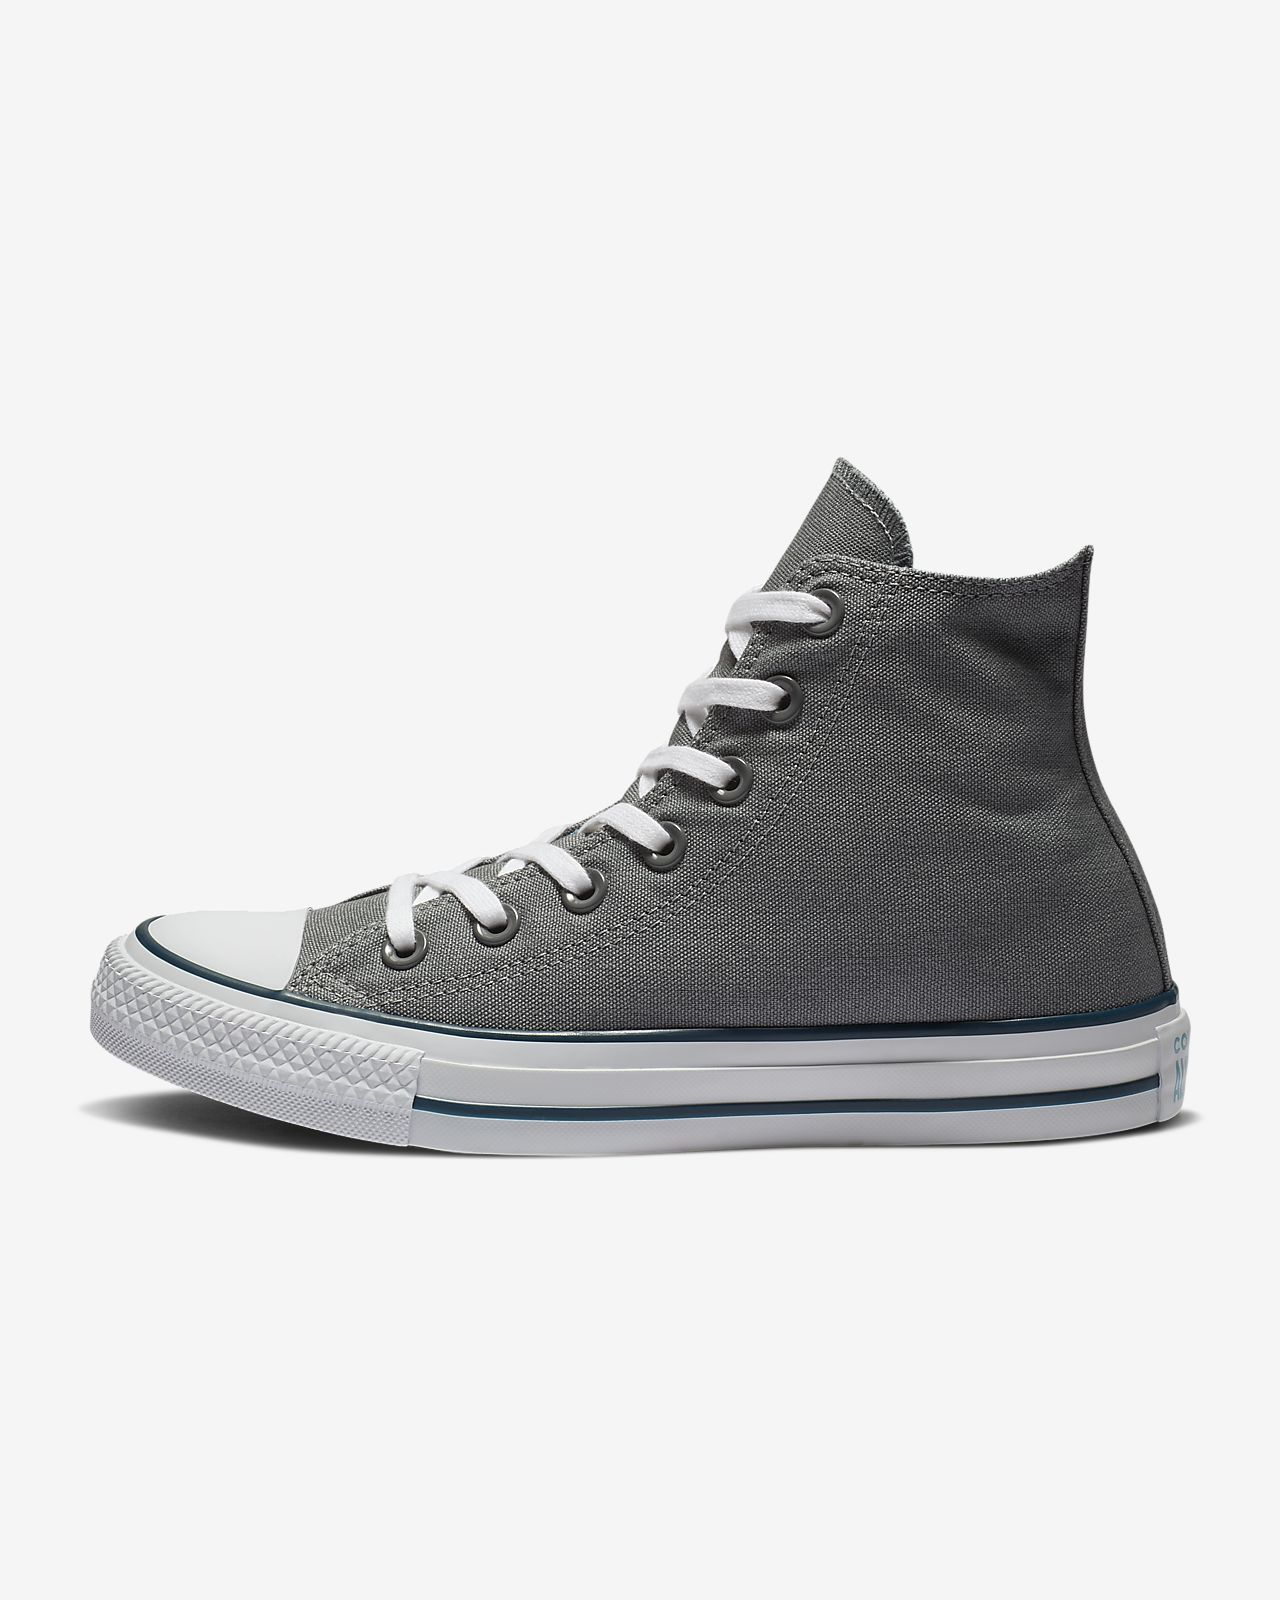 ... 50% off converse chuck taylor all star seasonal color high top unisex  shoe 24deb 60188 f498fa848